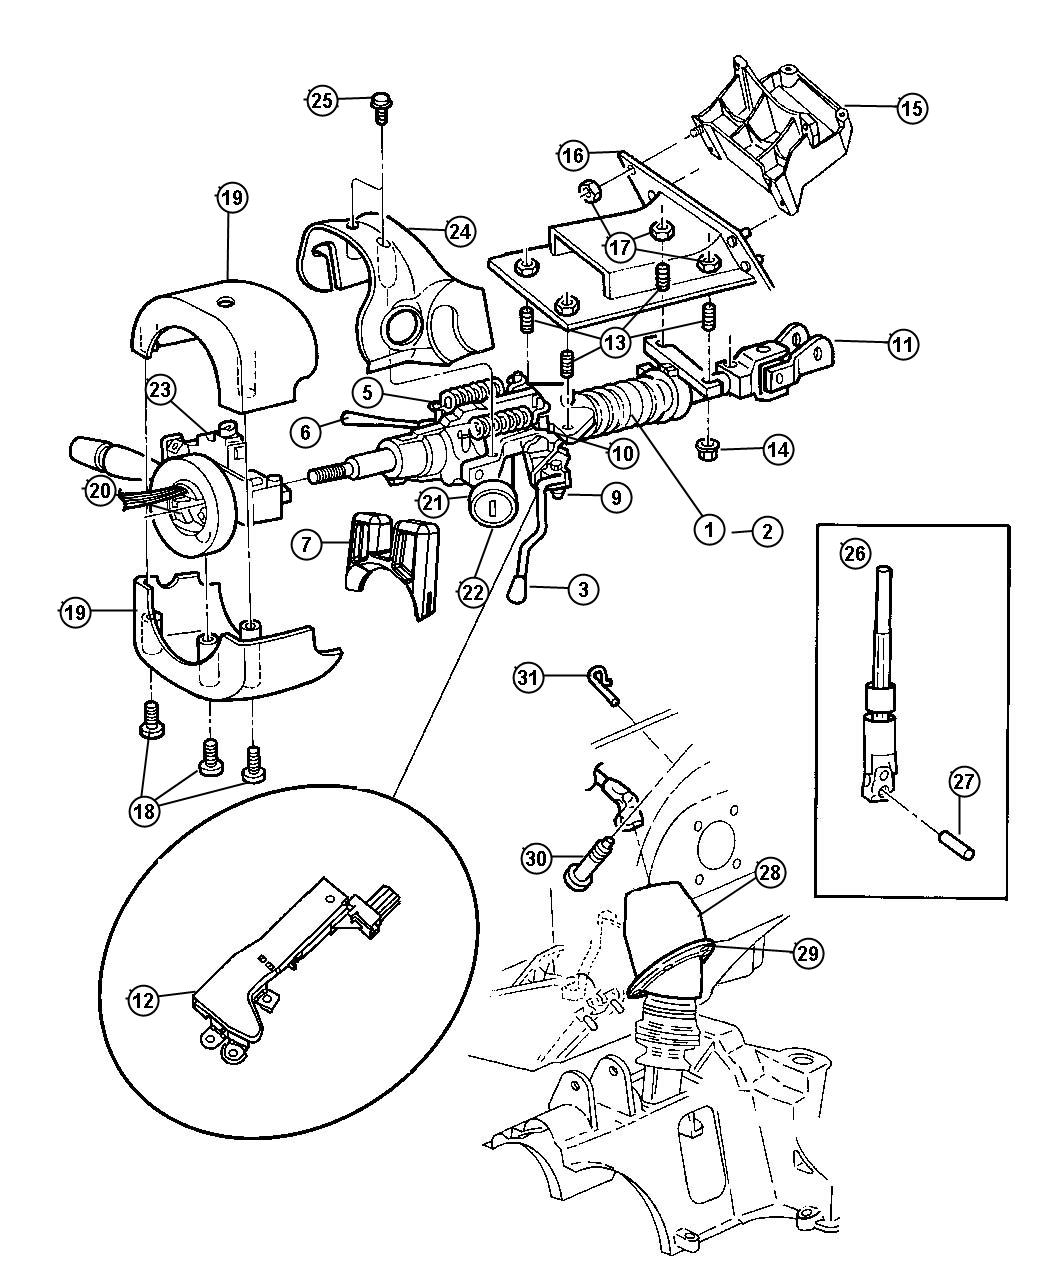 Ford Ranger Steering Column Diagram